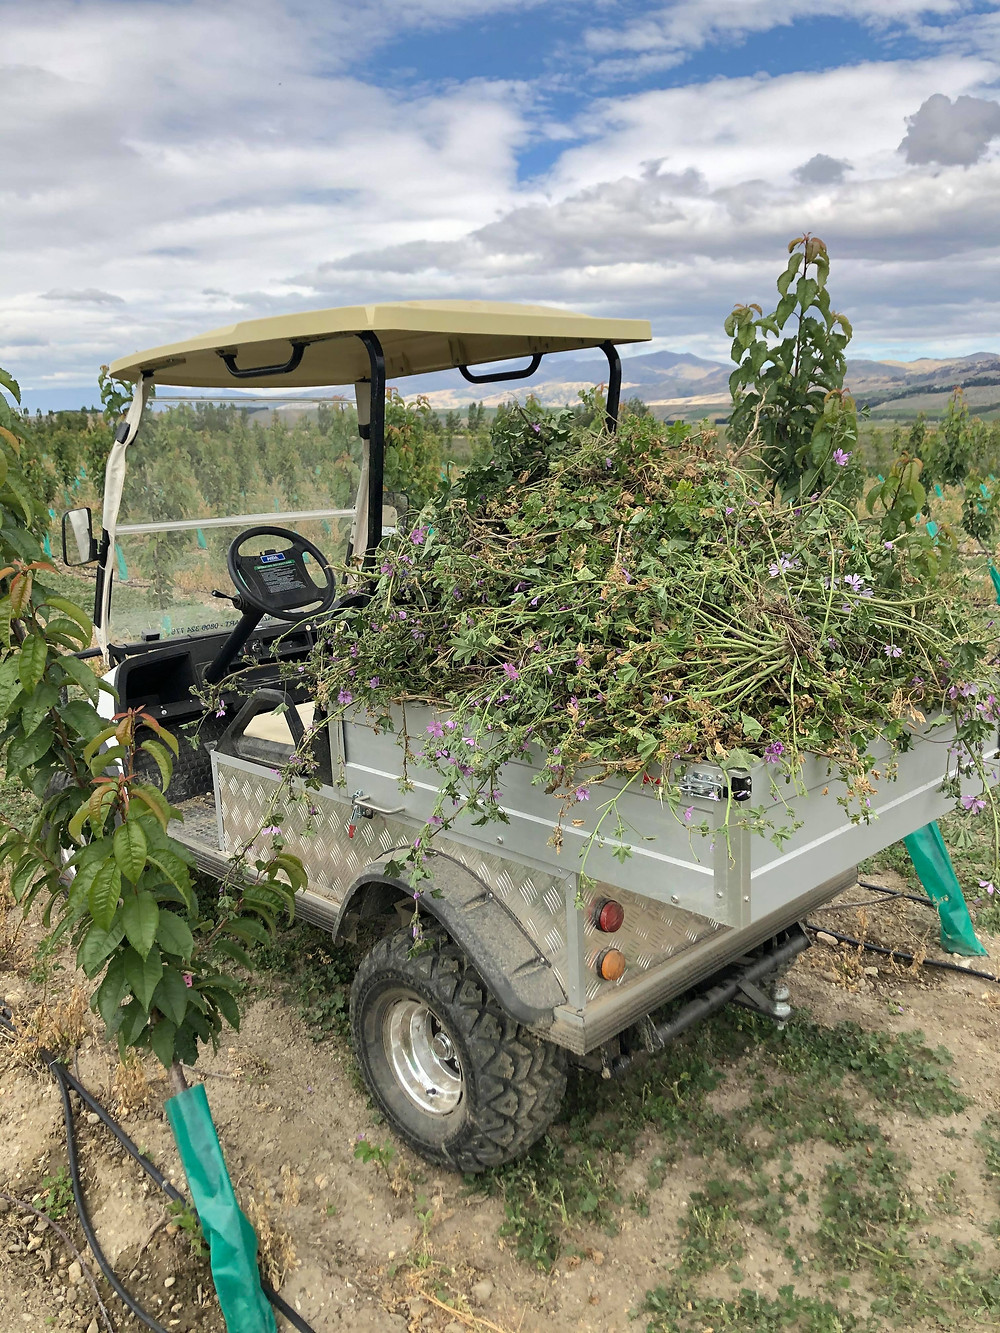 Carting away unwanted Mallow weed in the golf cart